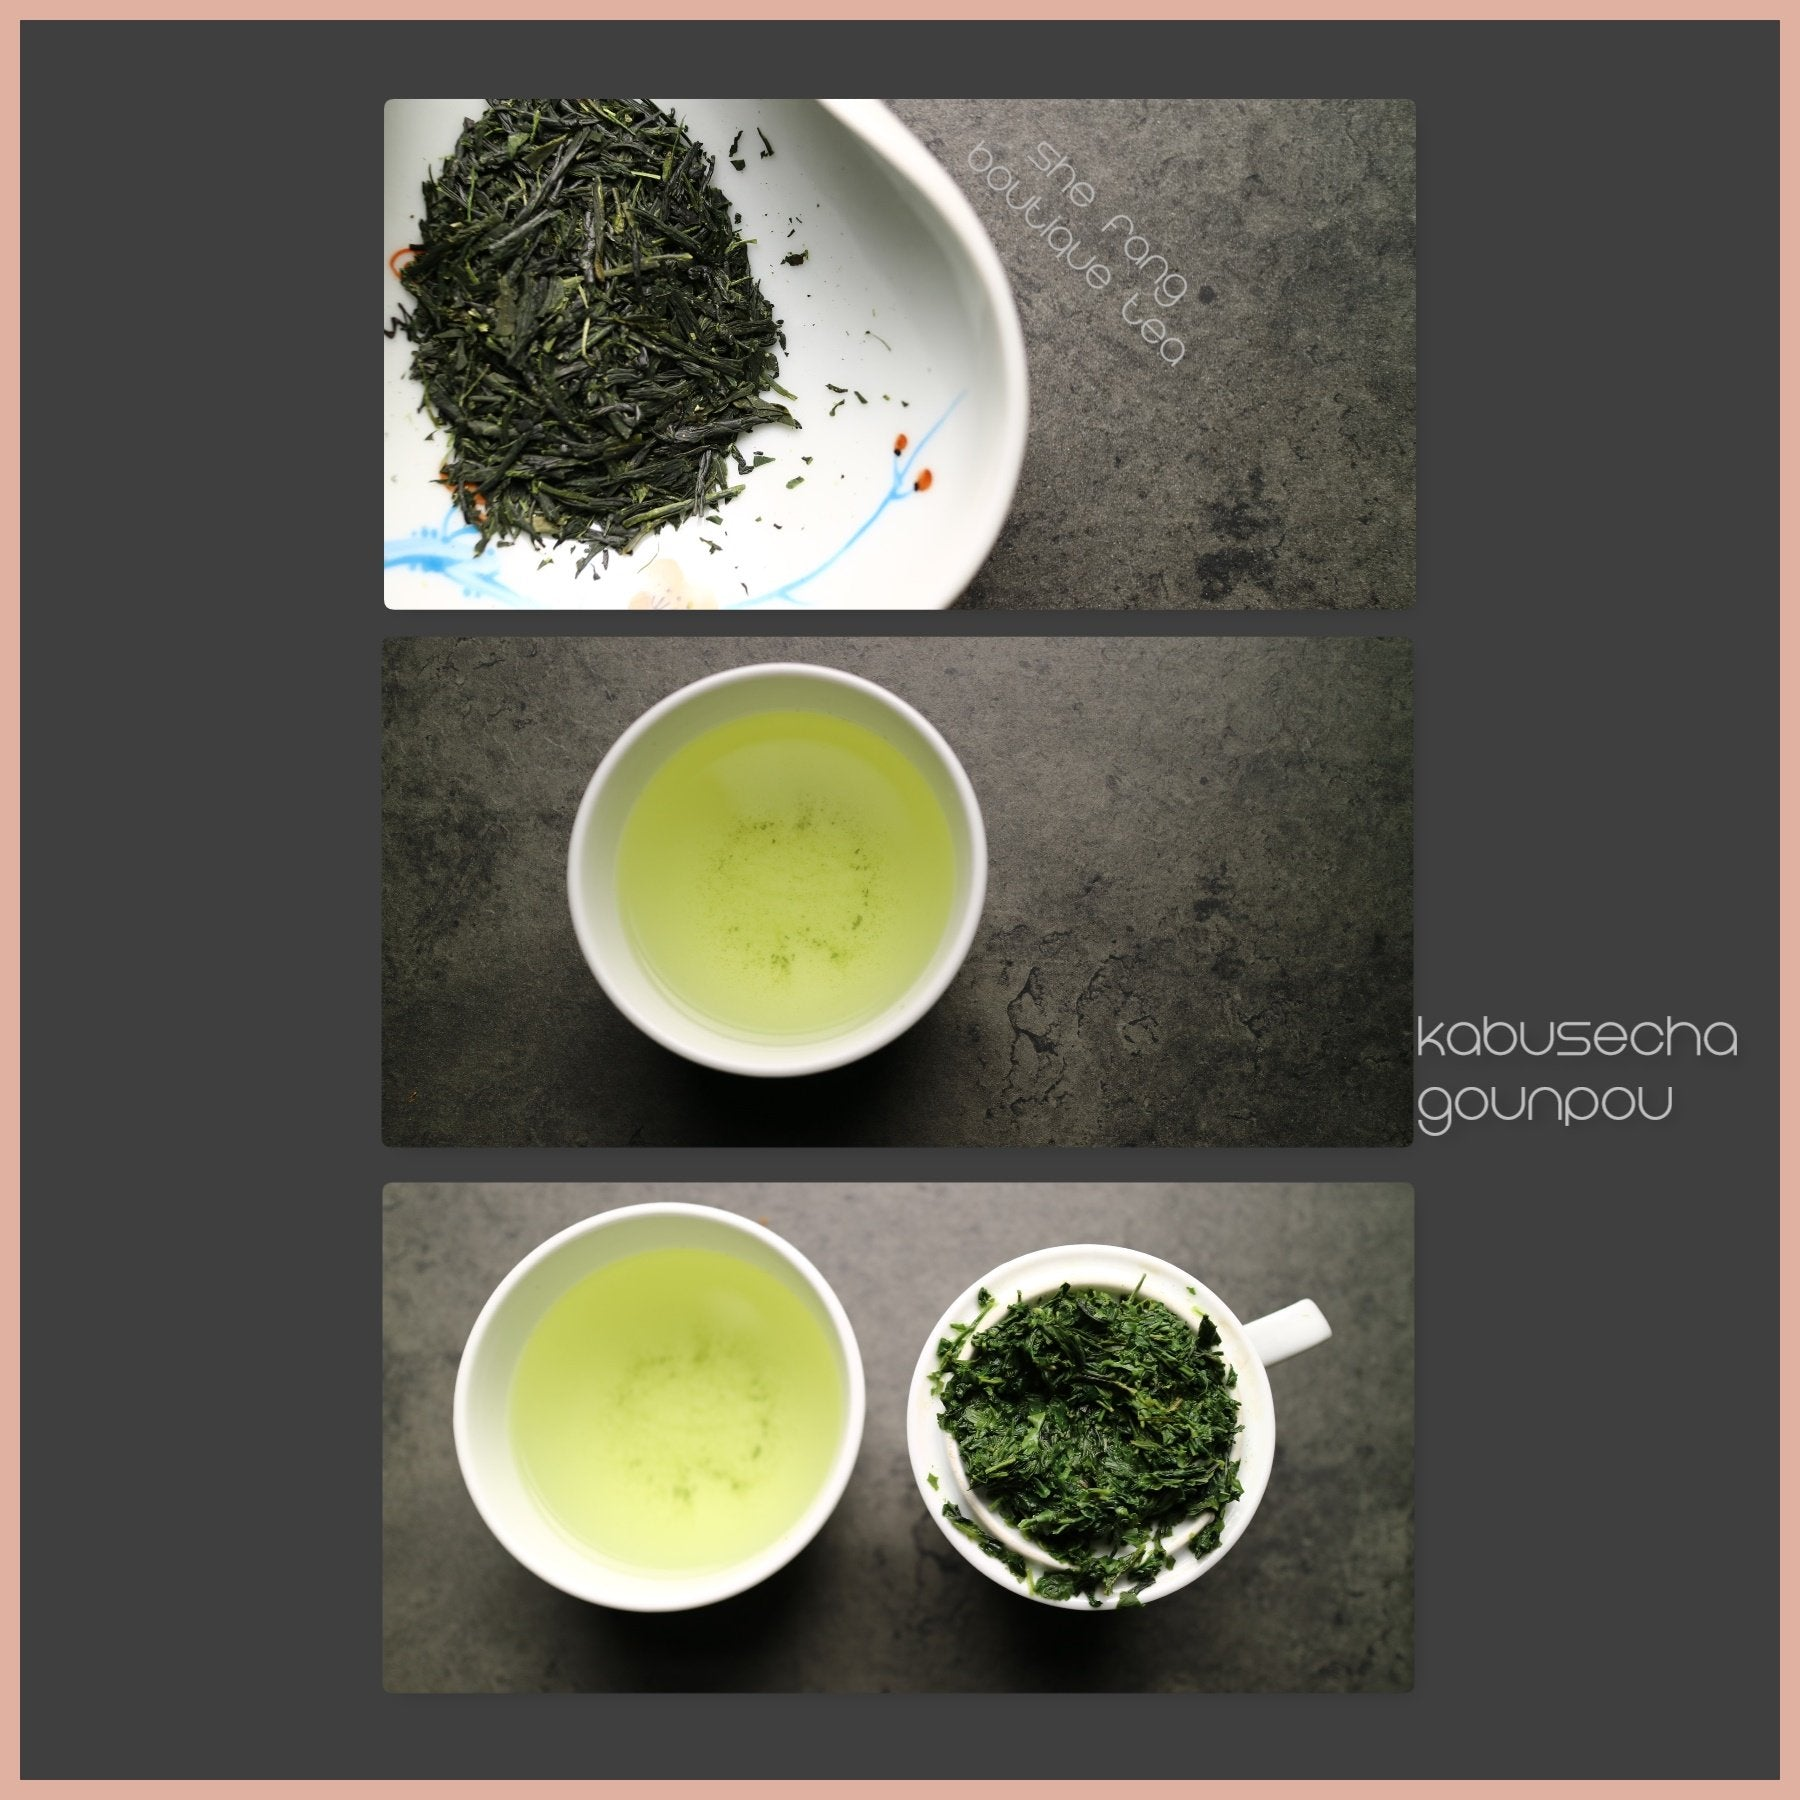 Tea sourcing batch n.239 - Teas from Japan - Kabusecha Gounpou, Kyoto Prefecture